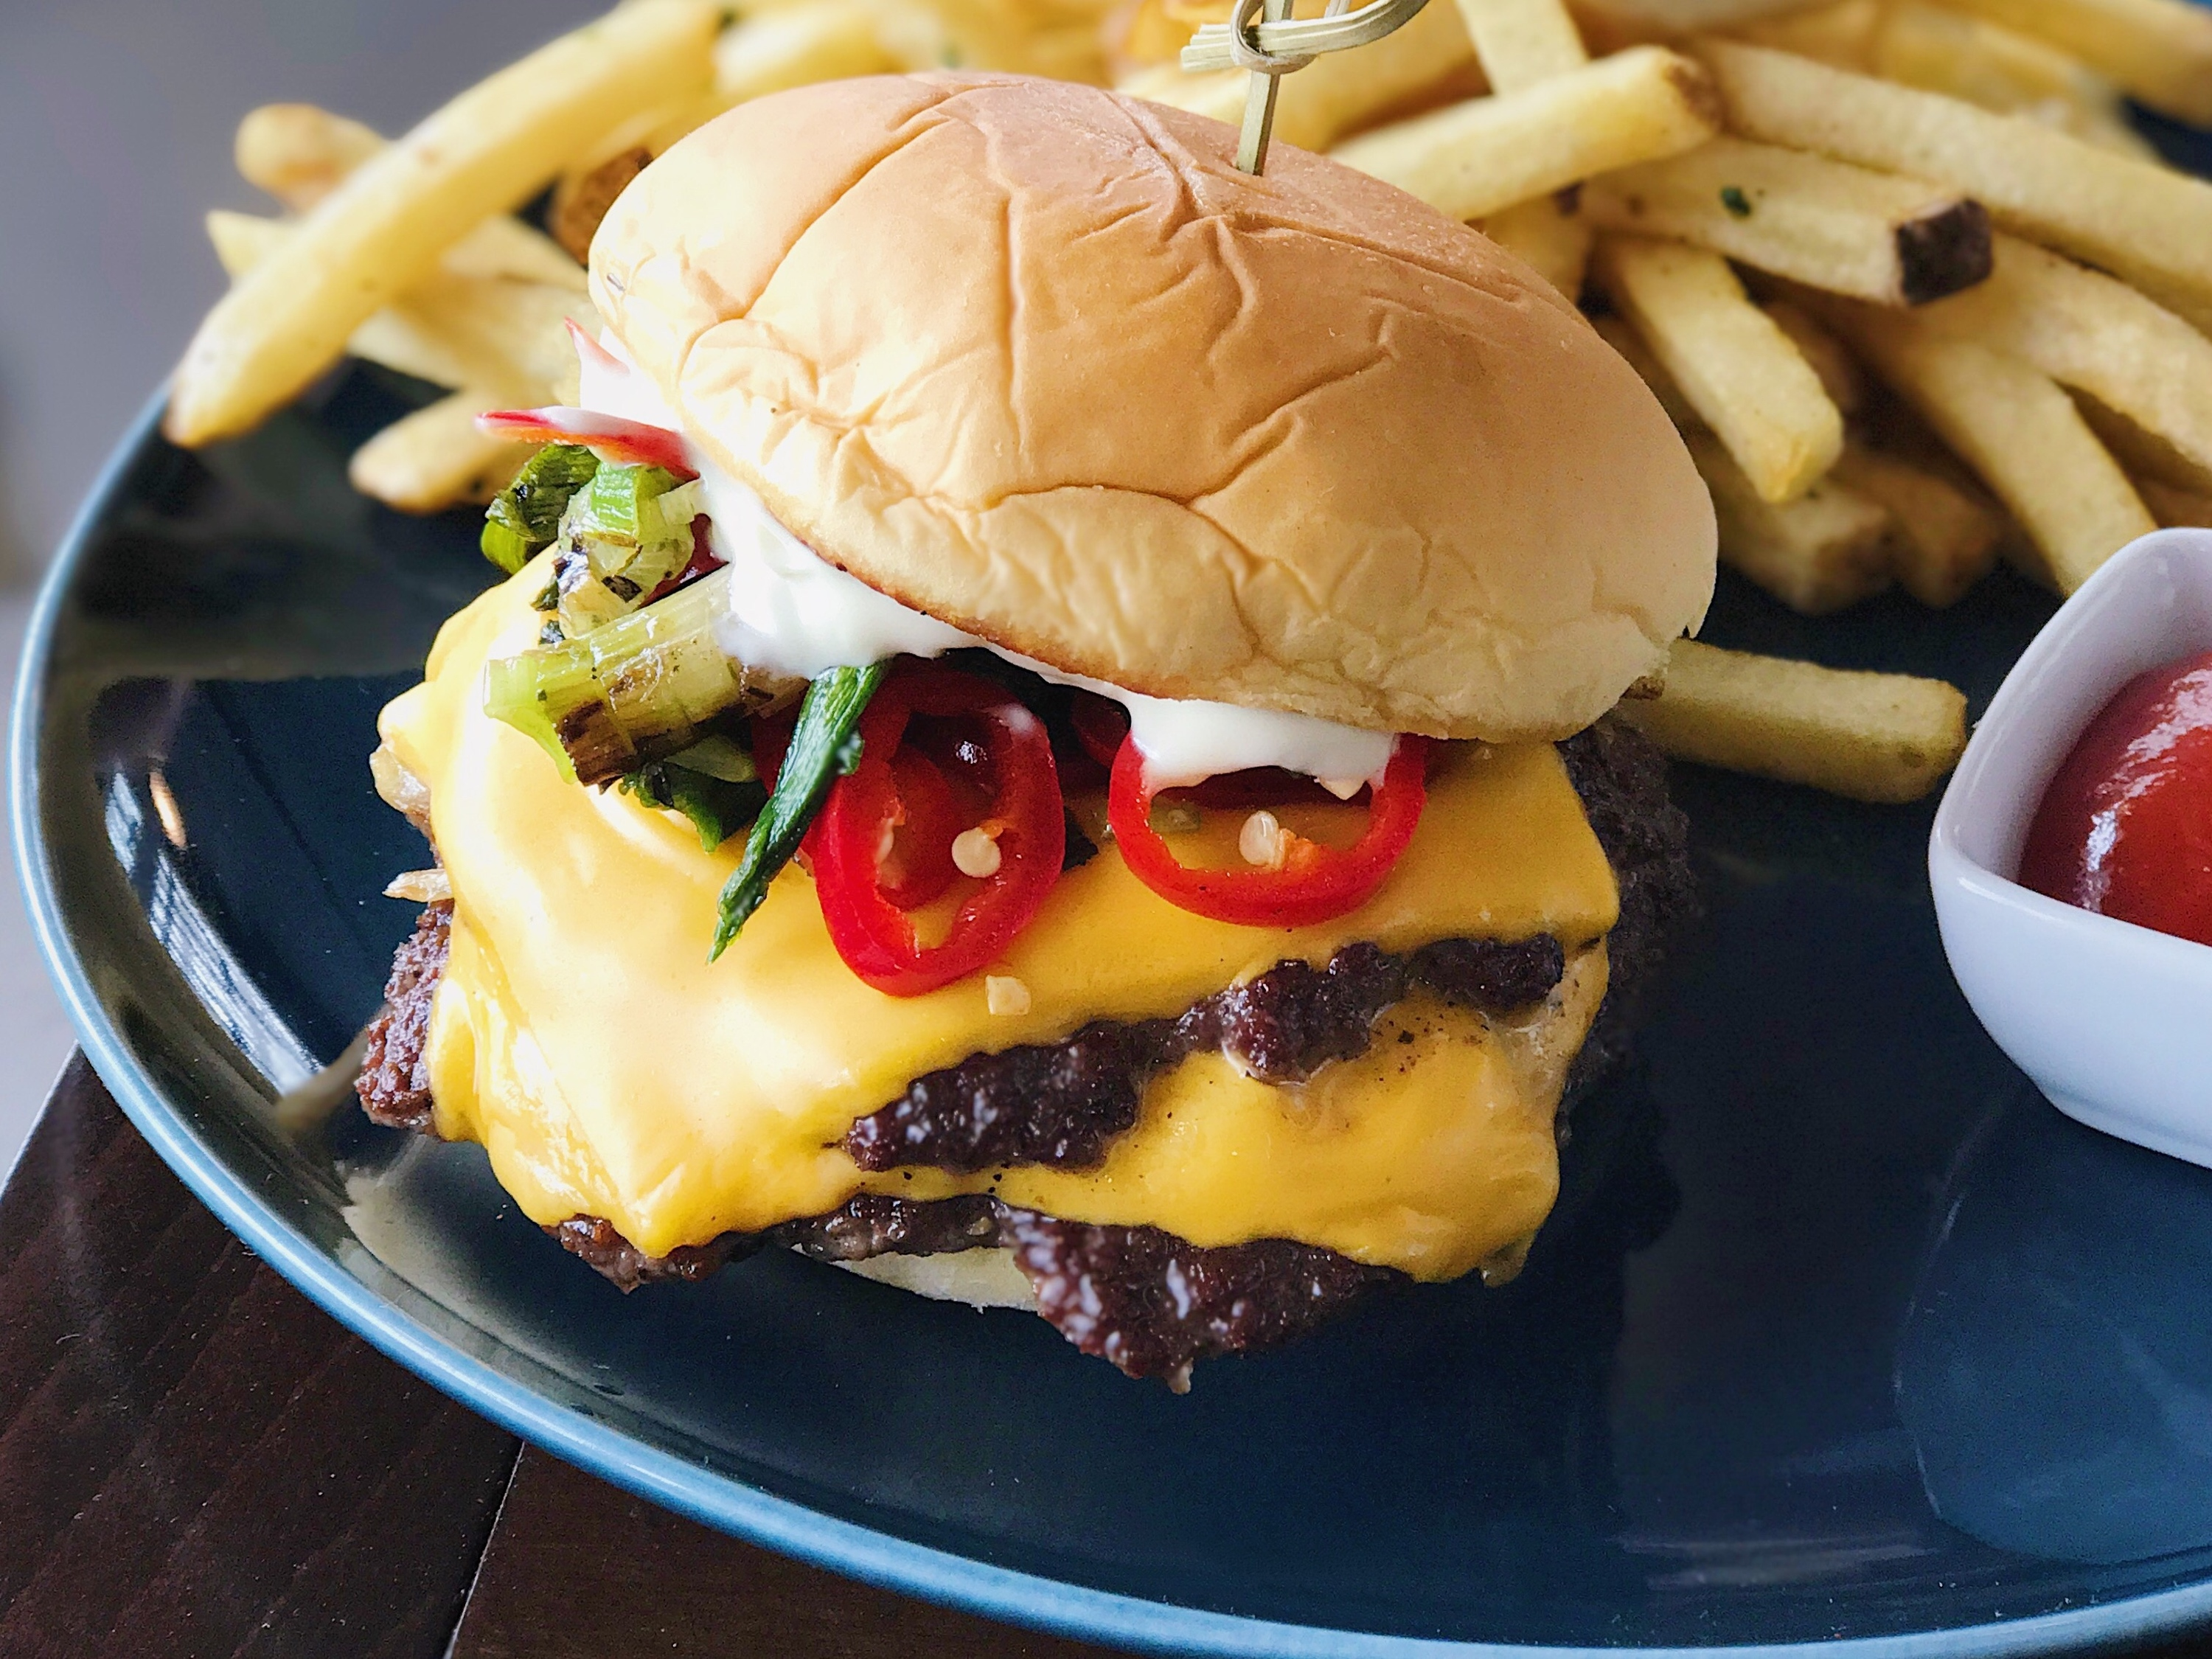 Mister O's Studio City cheeseburger